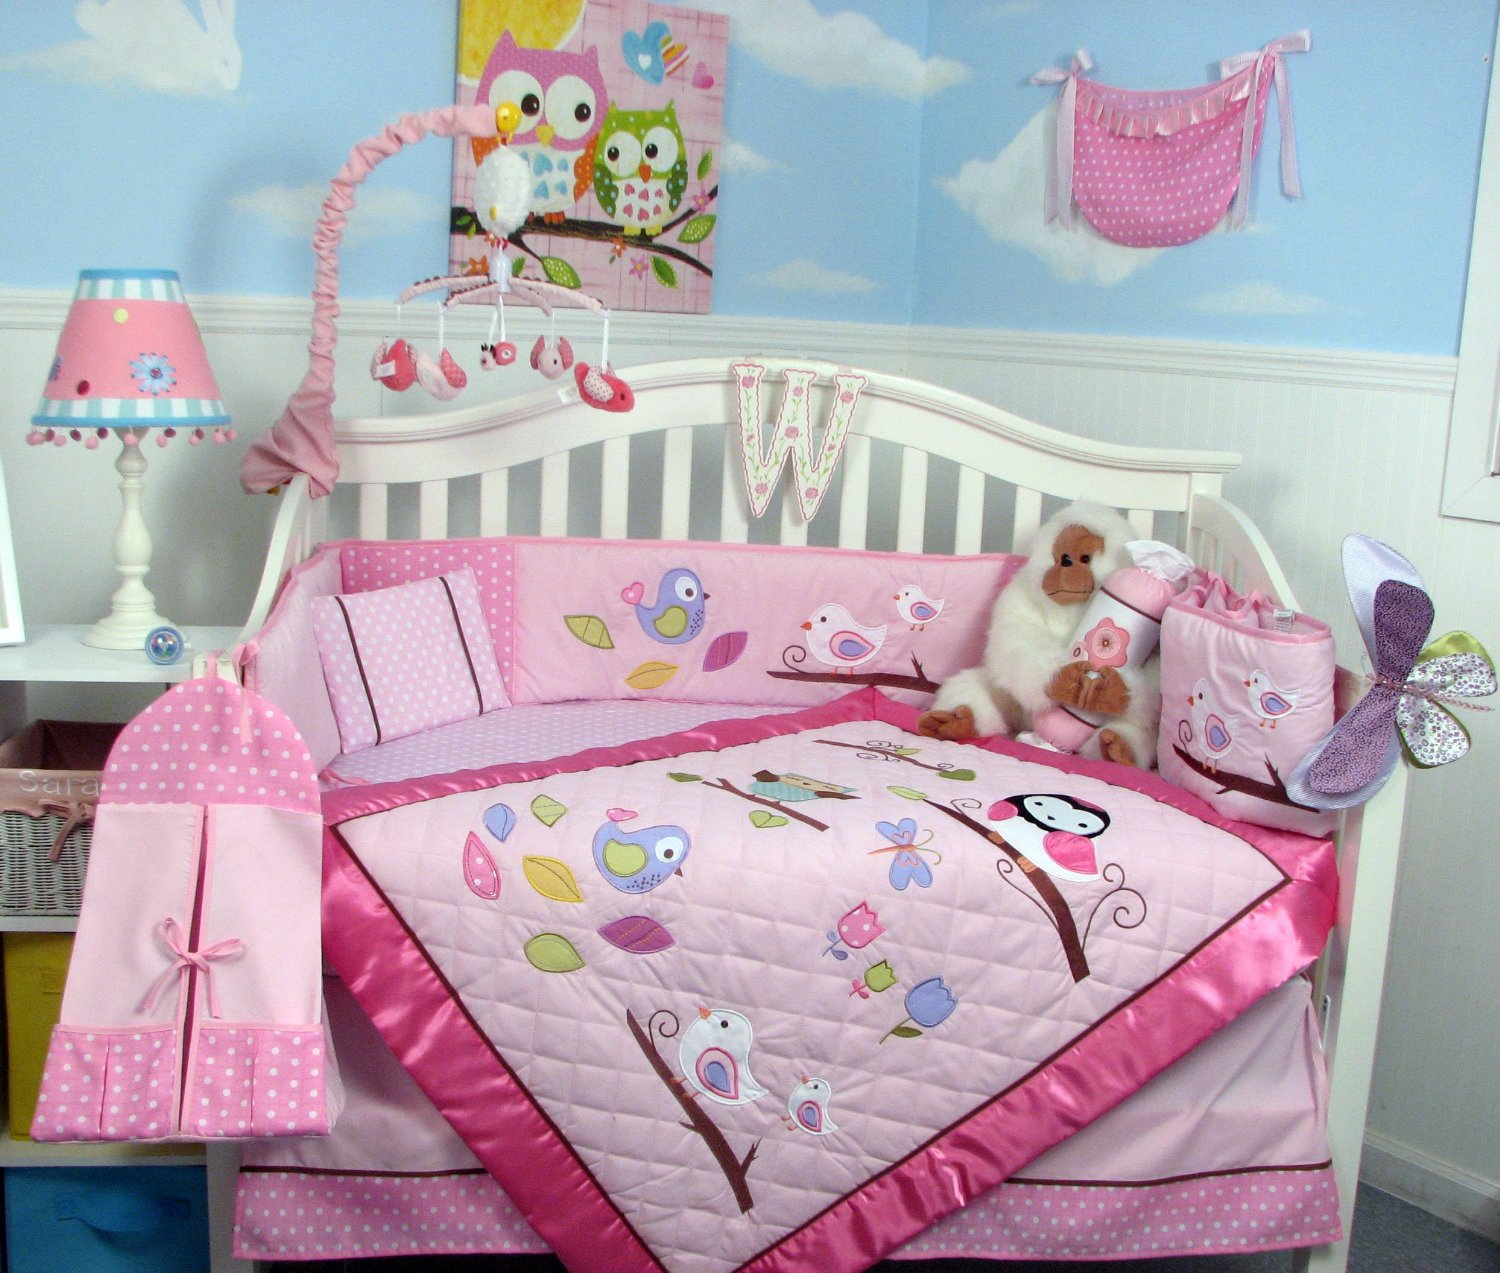 Soho Owls Meadowland Crib Bedding Collection